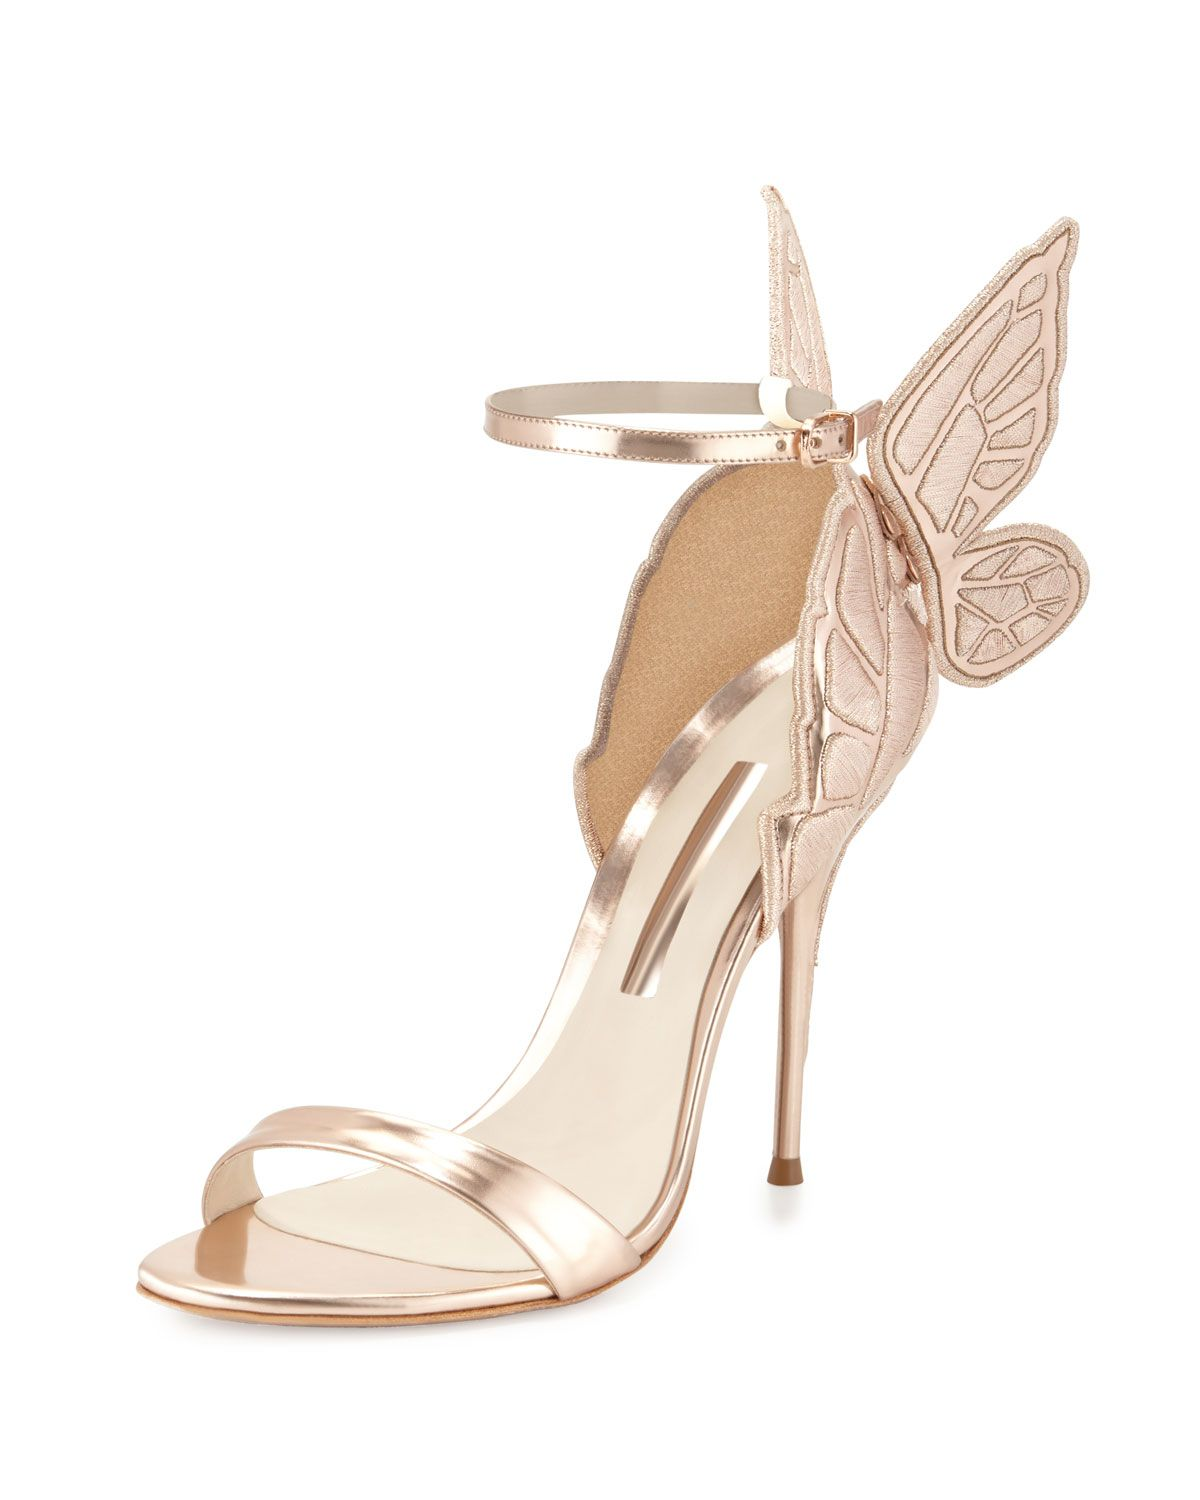 28271f8a519 Sophia Webster Chiara Butterfly Wing Ankle-Wrap Sandals, Gold in ...